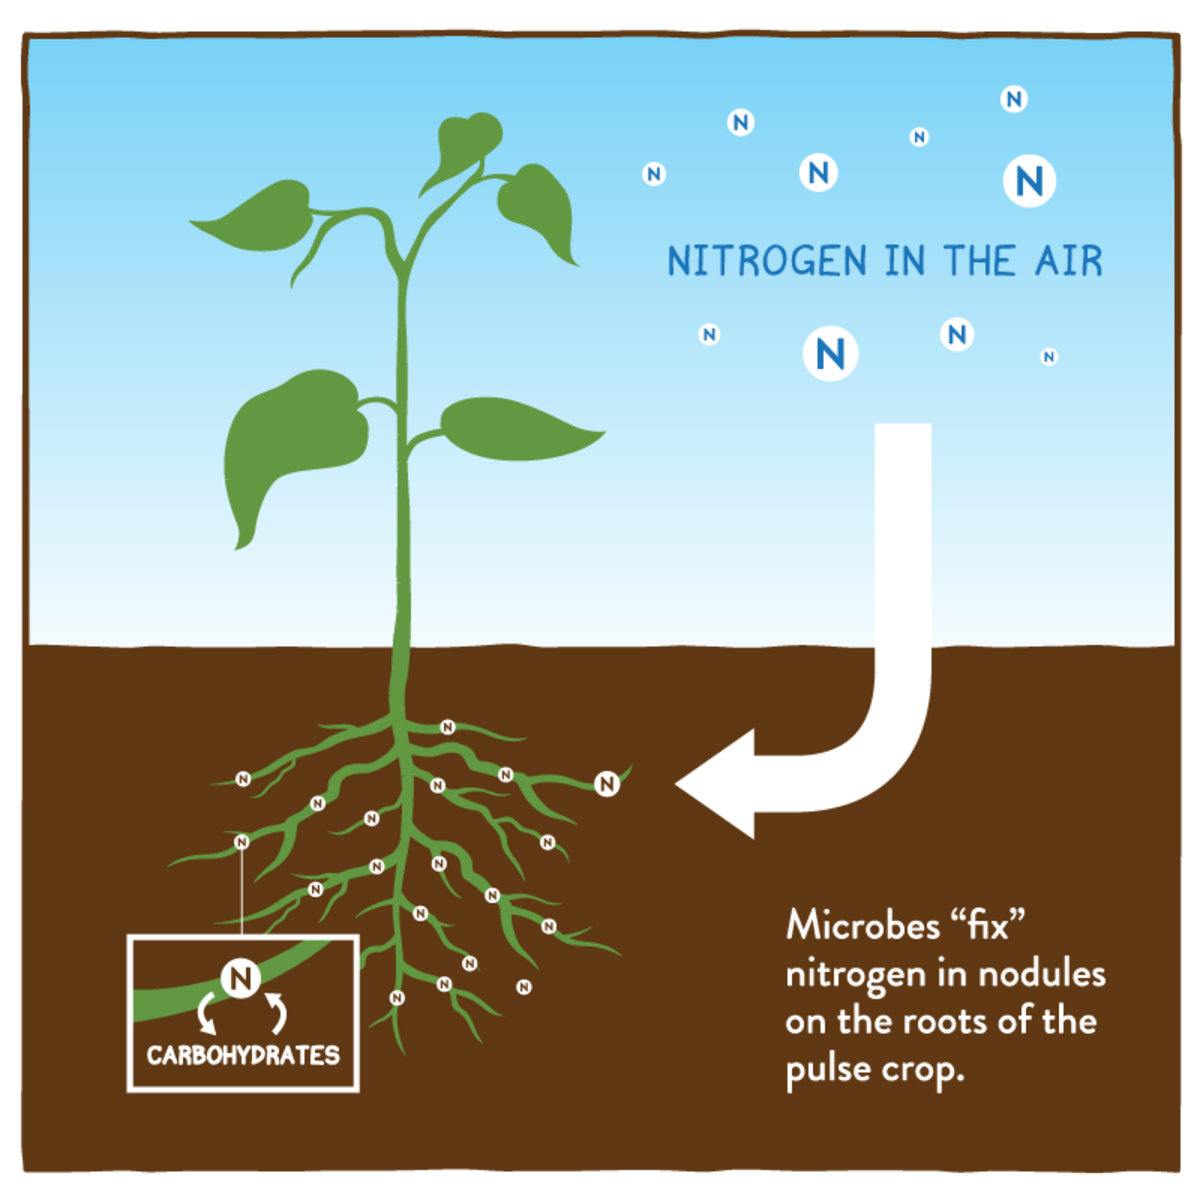 Some plants, like dandelions, in symbiosis with bacteria, capture nitrogen from the air and transform it into bio-available forms